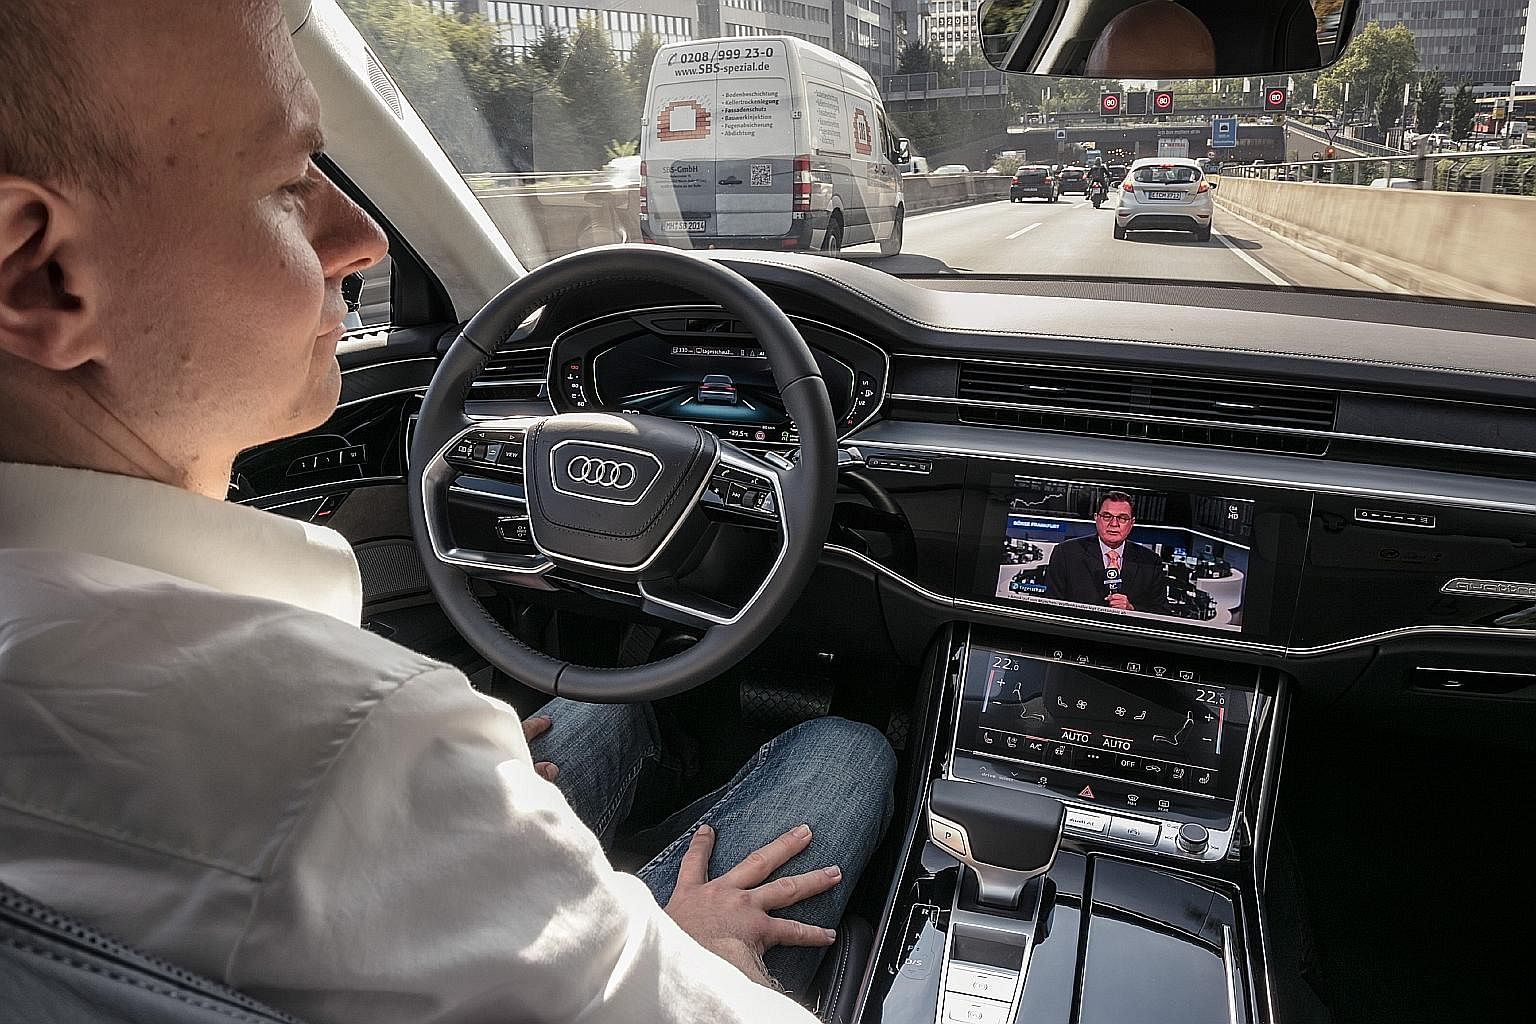 Audi A8's hands-free feature may allow the driver to watch a movie on the car's infotainment screen.